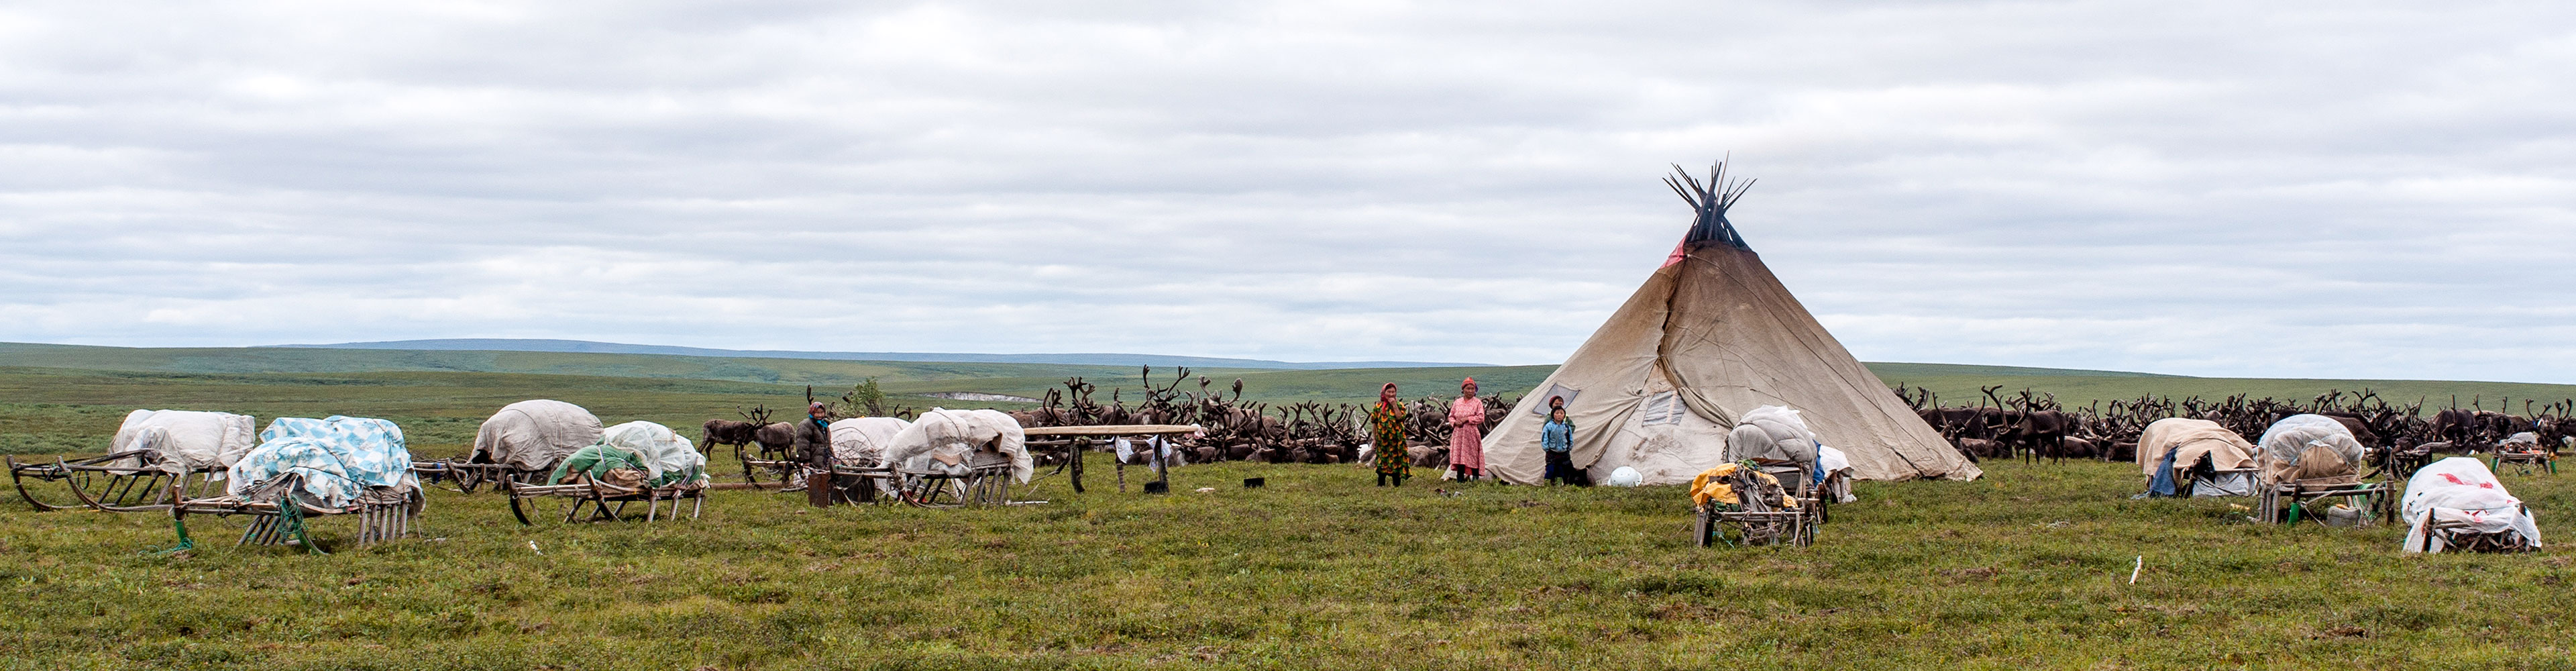 Russia Expedition: Footsteps of the Reindeer Herders